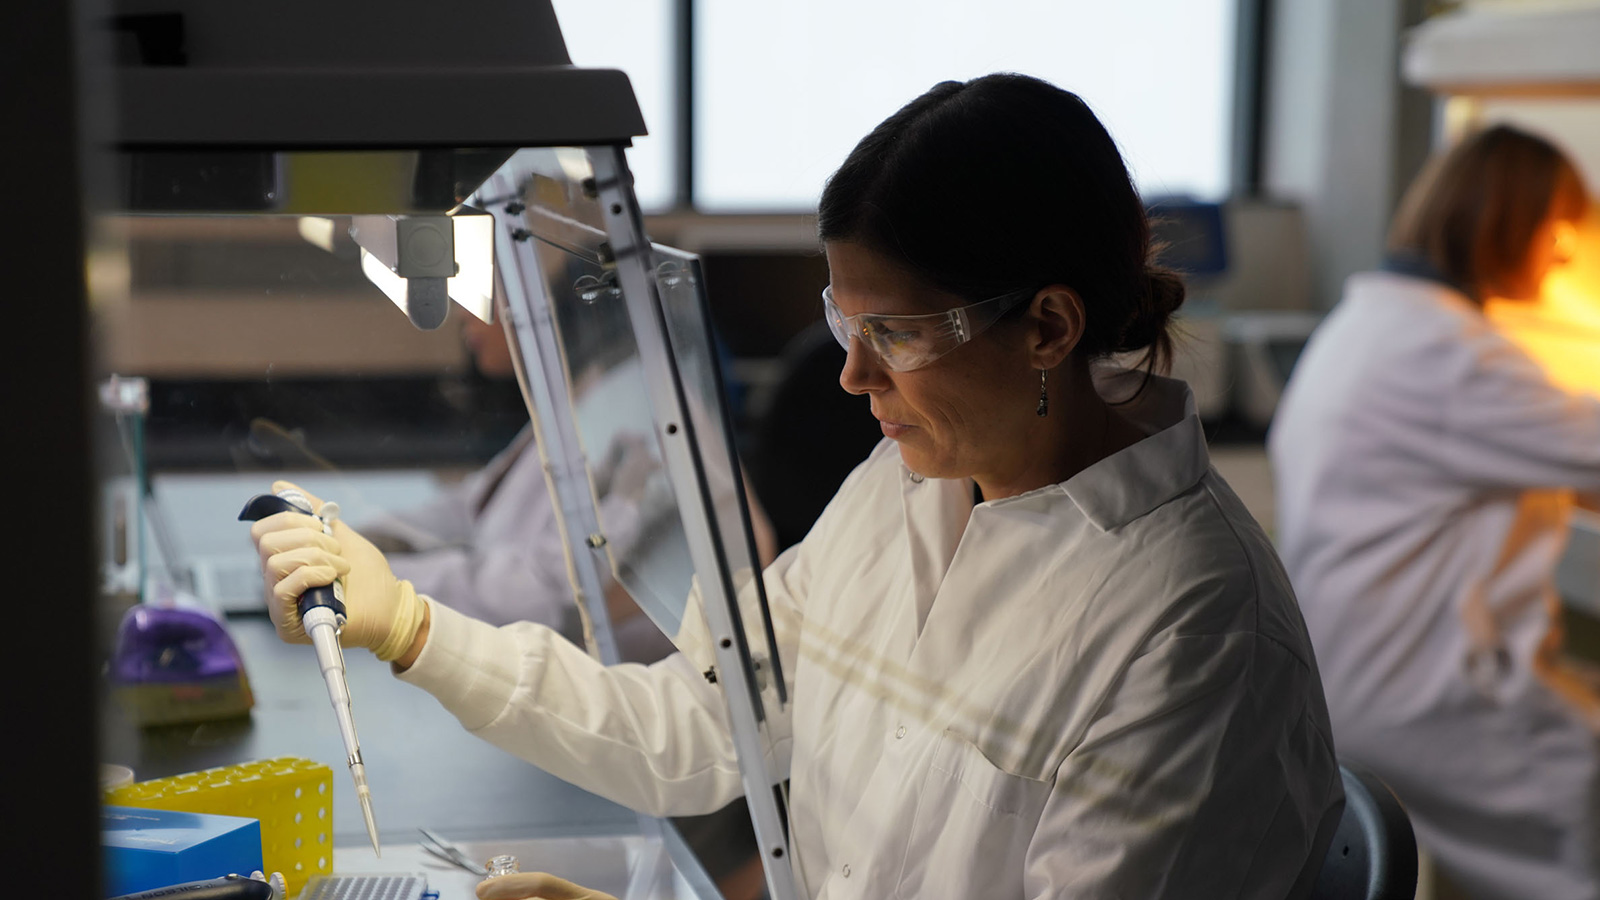 Researcher working in a lab with pipette